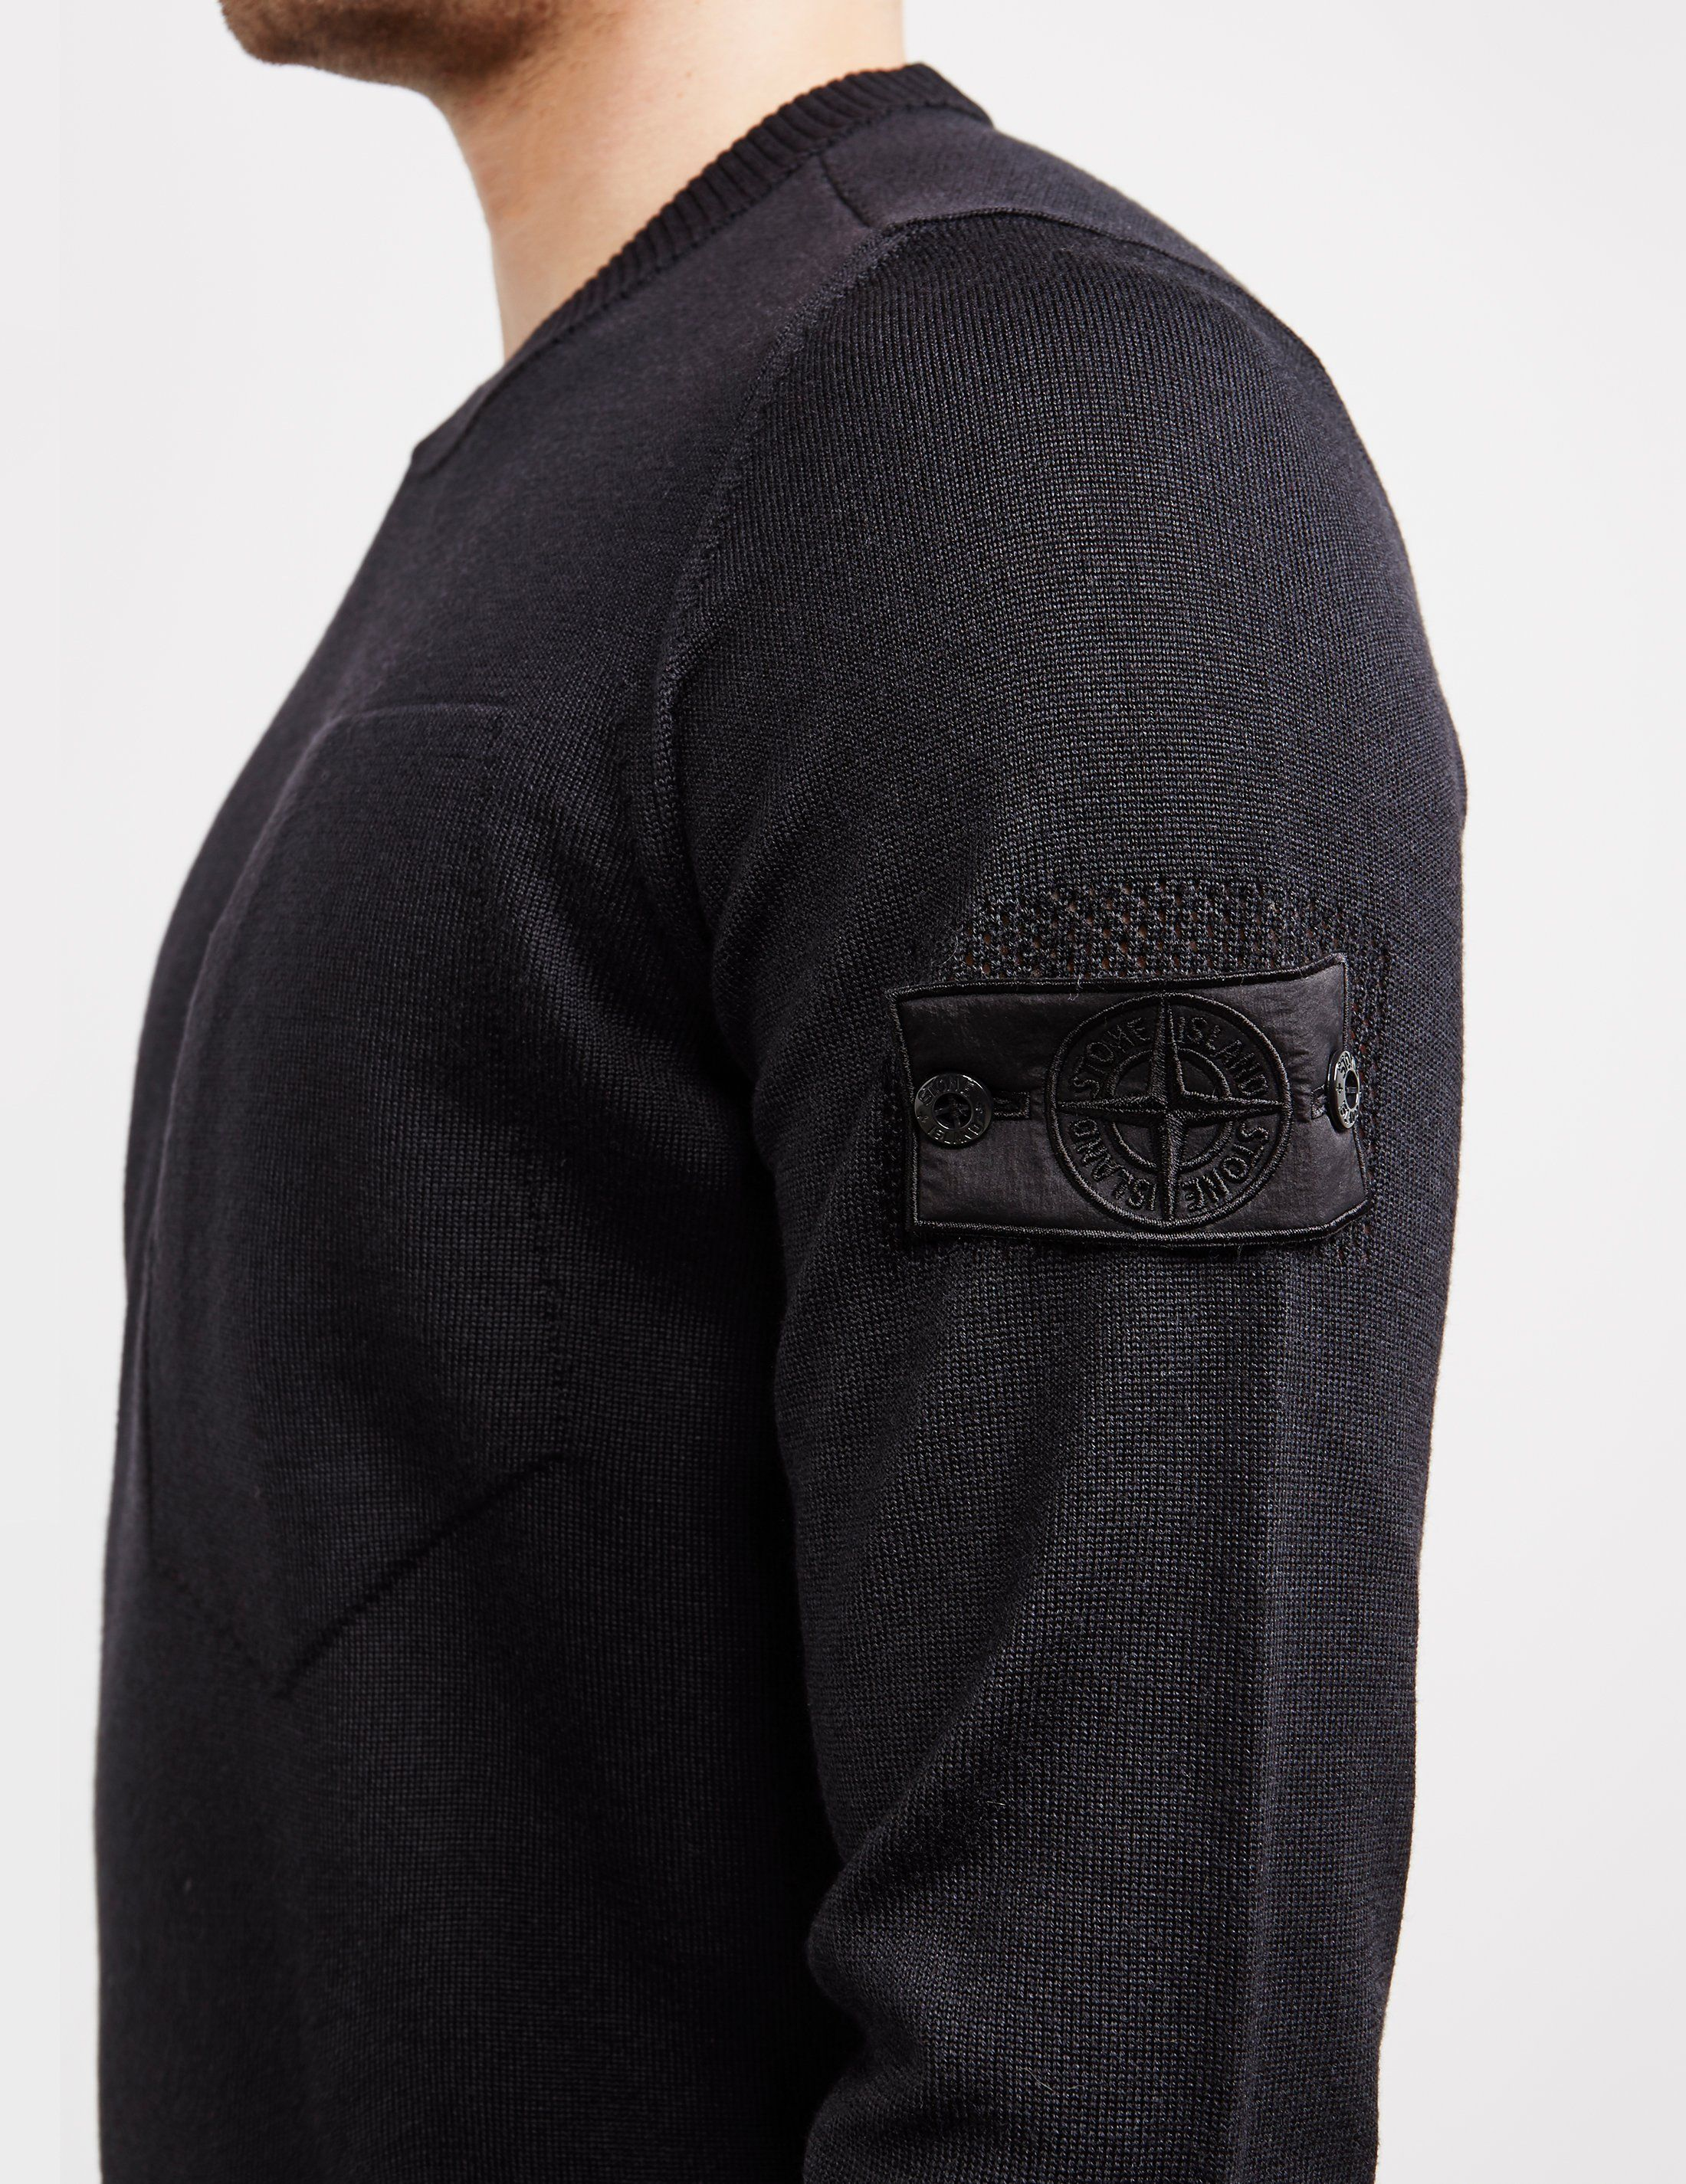 Stone Island Knitted Jumper - Online Exclusive